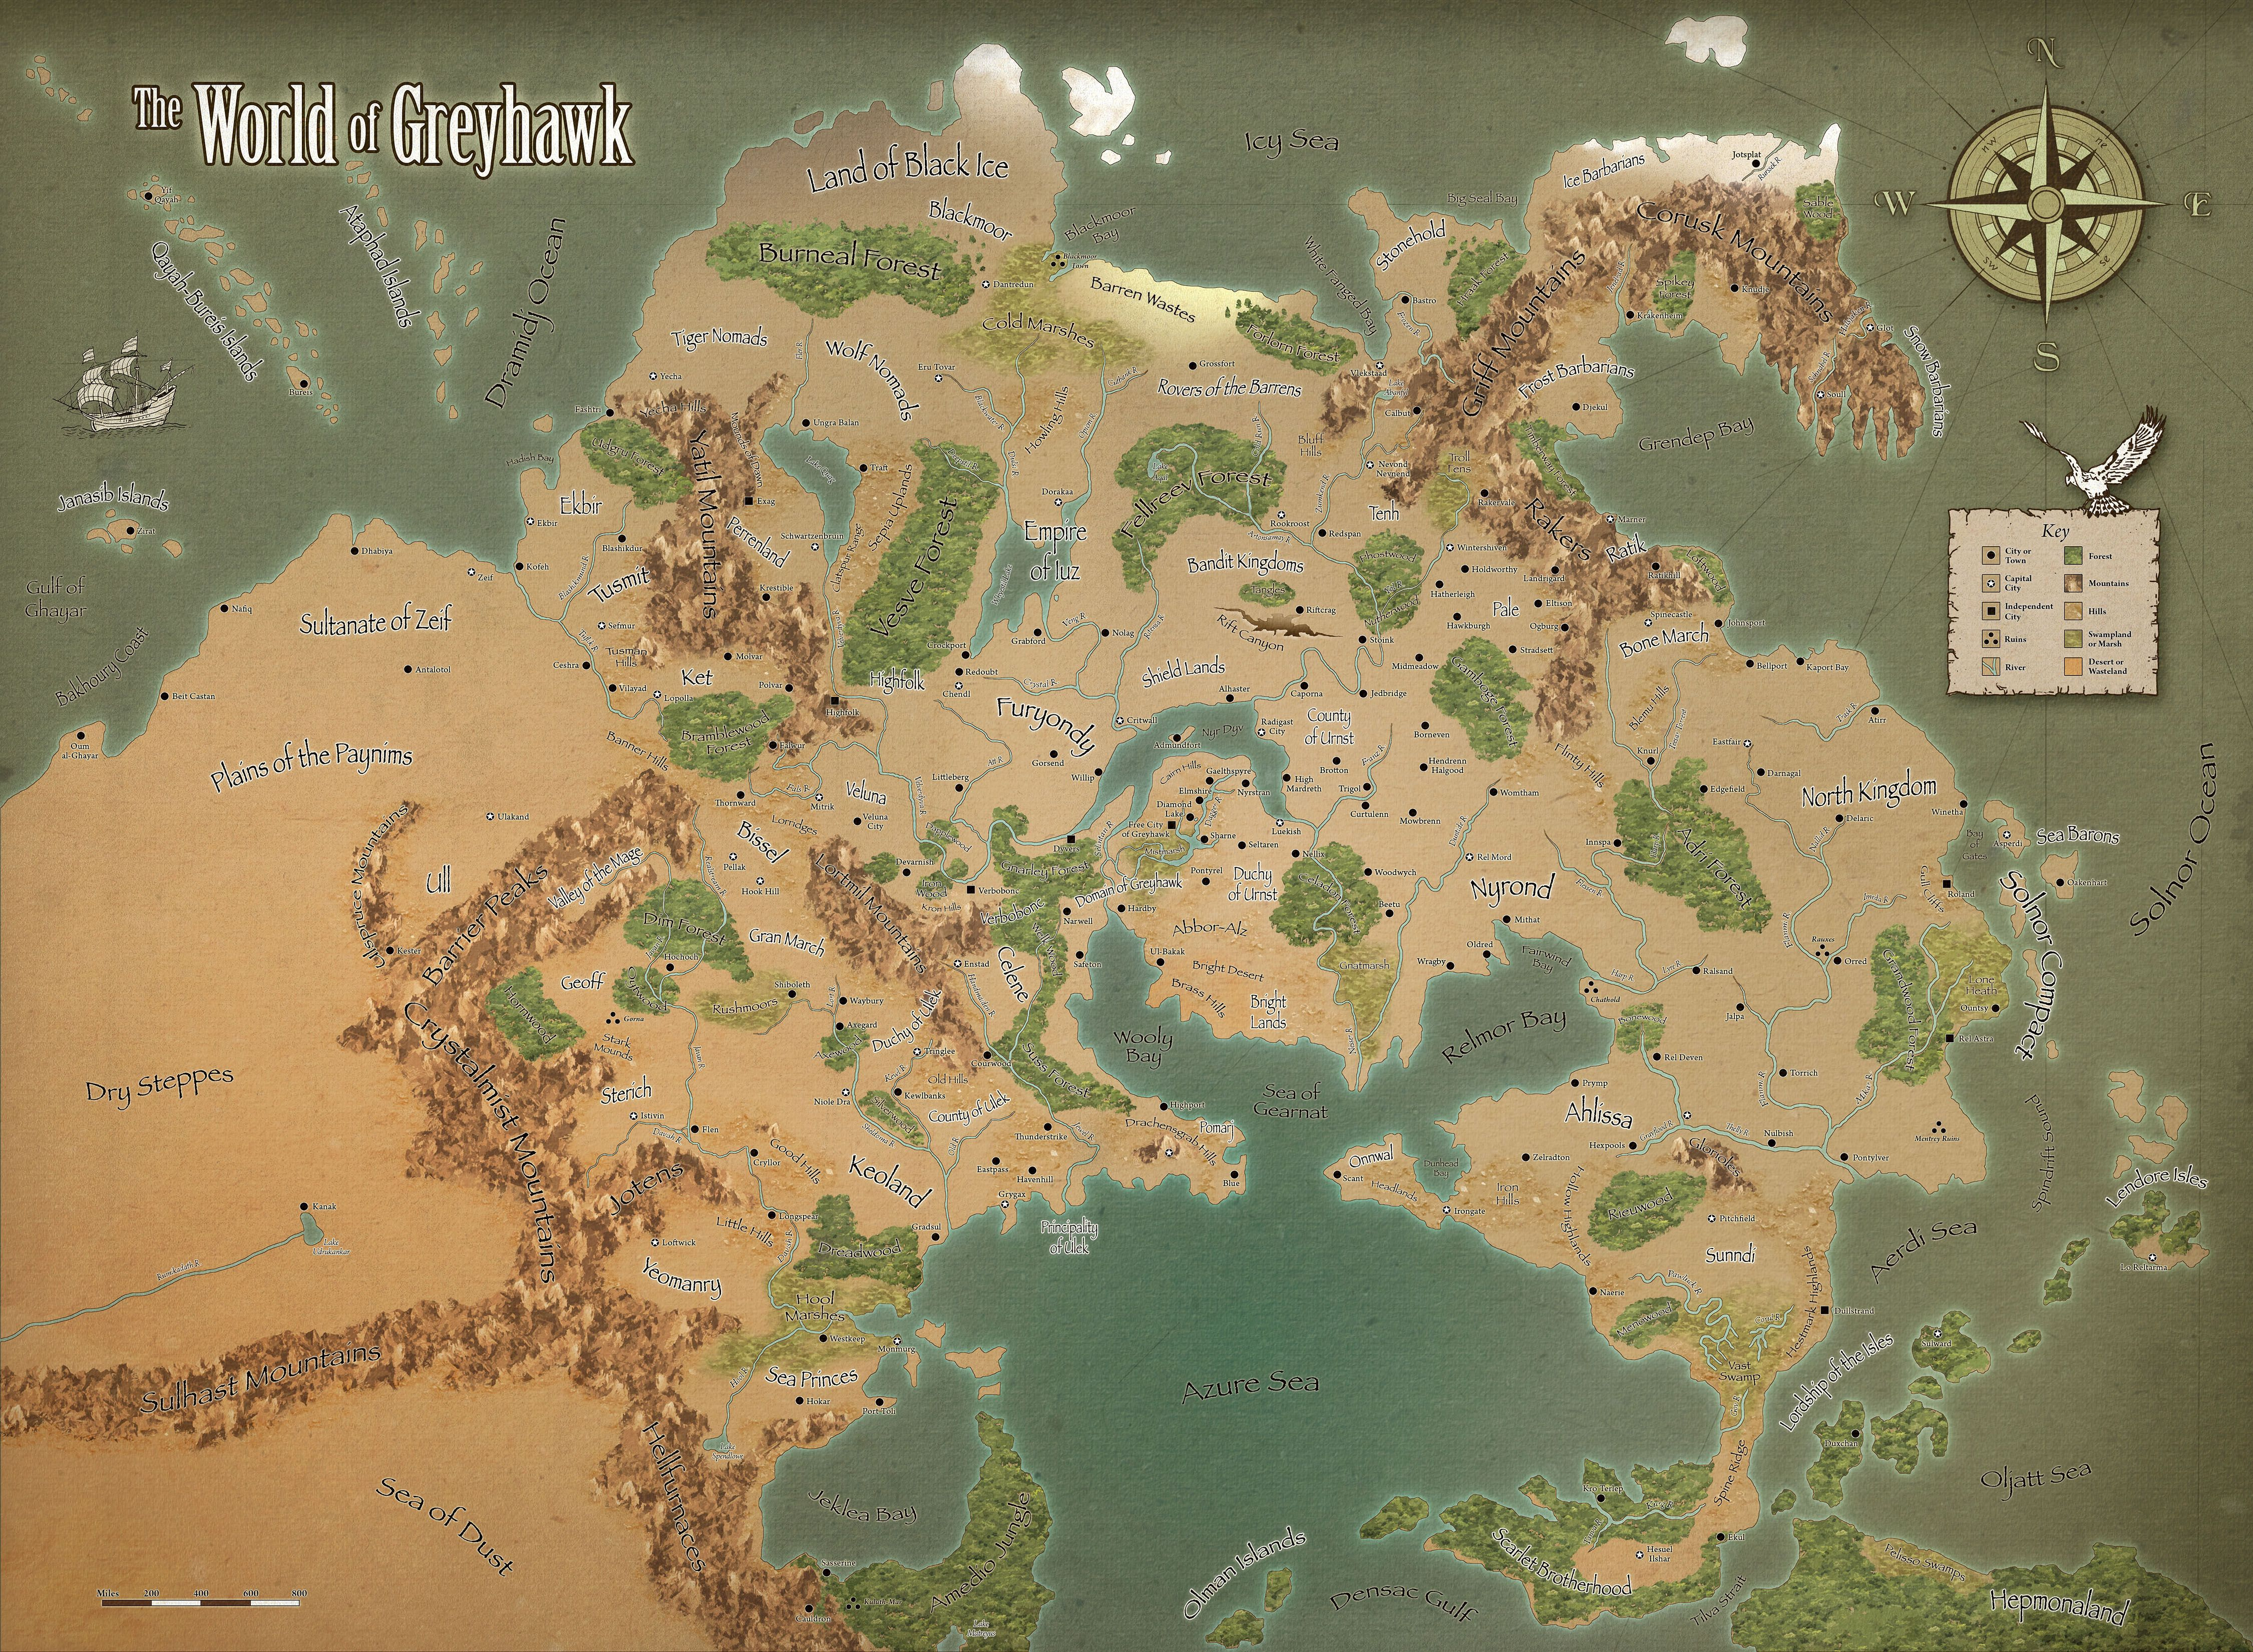 World of Greyhawk by hero339 on DeviantArt